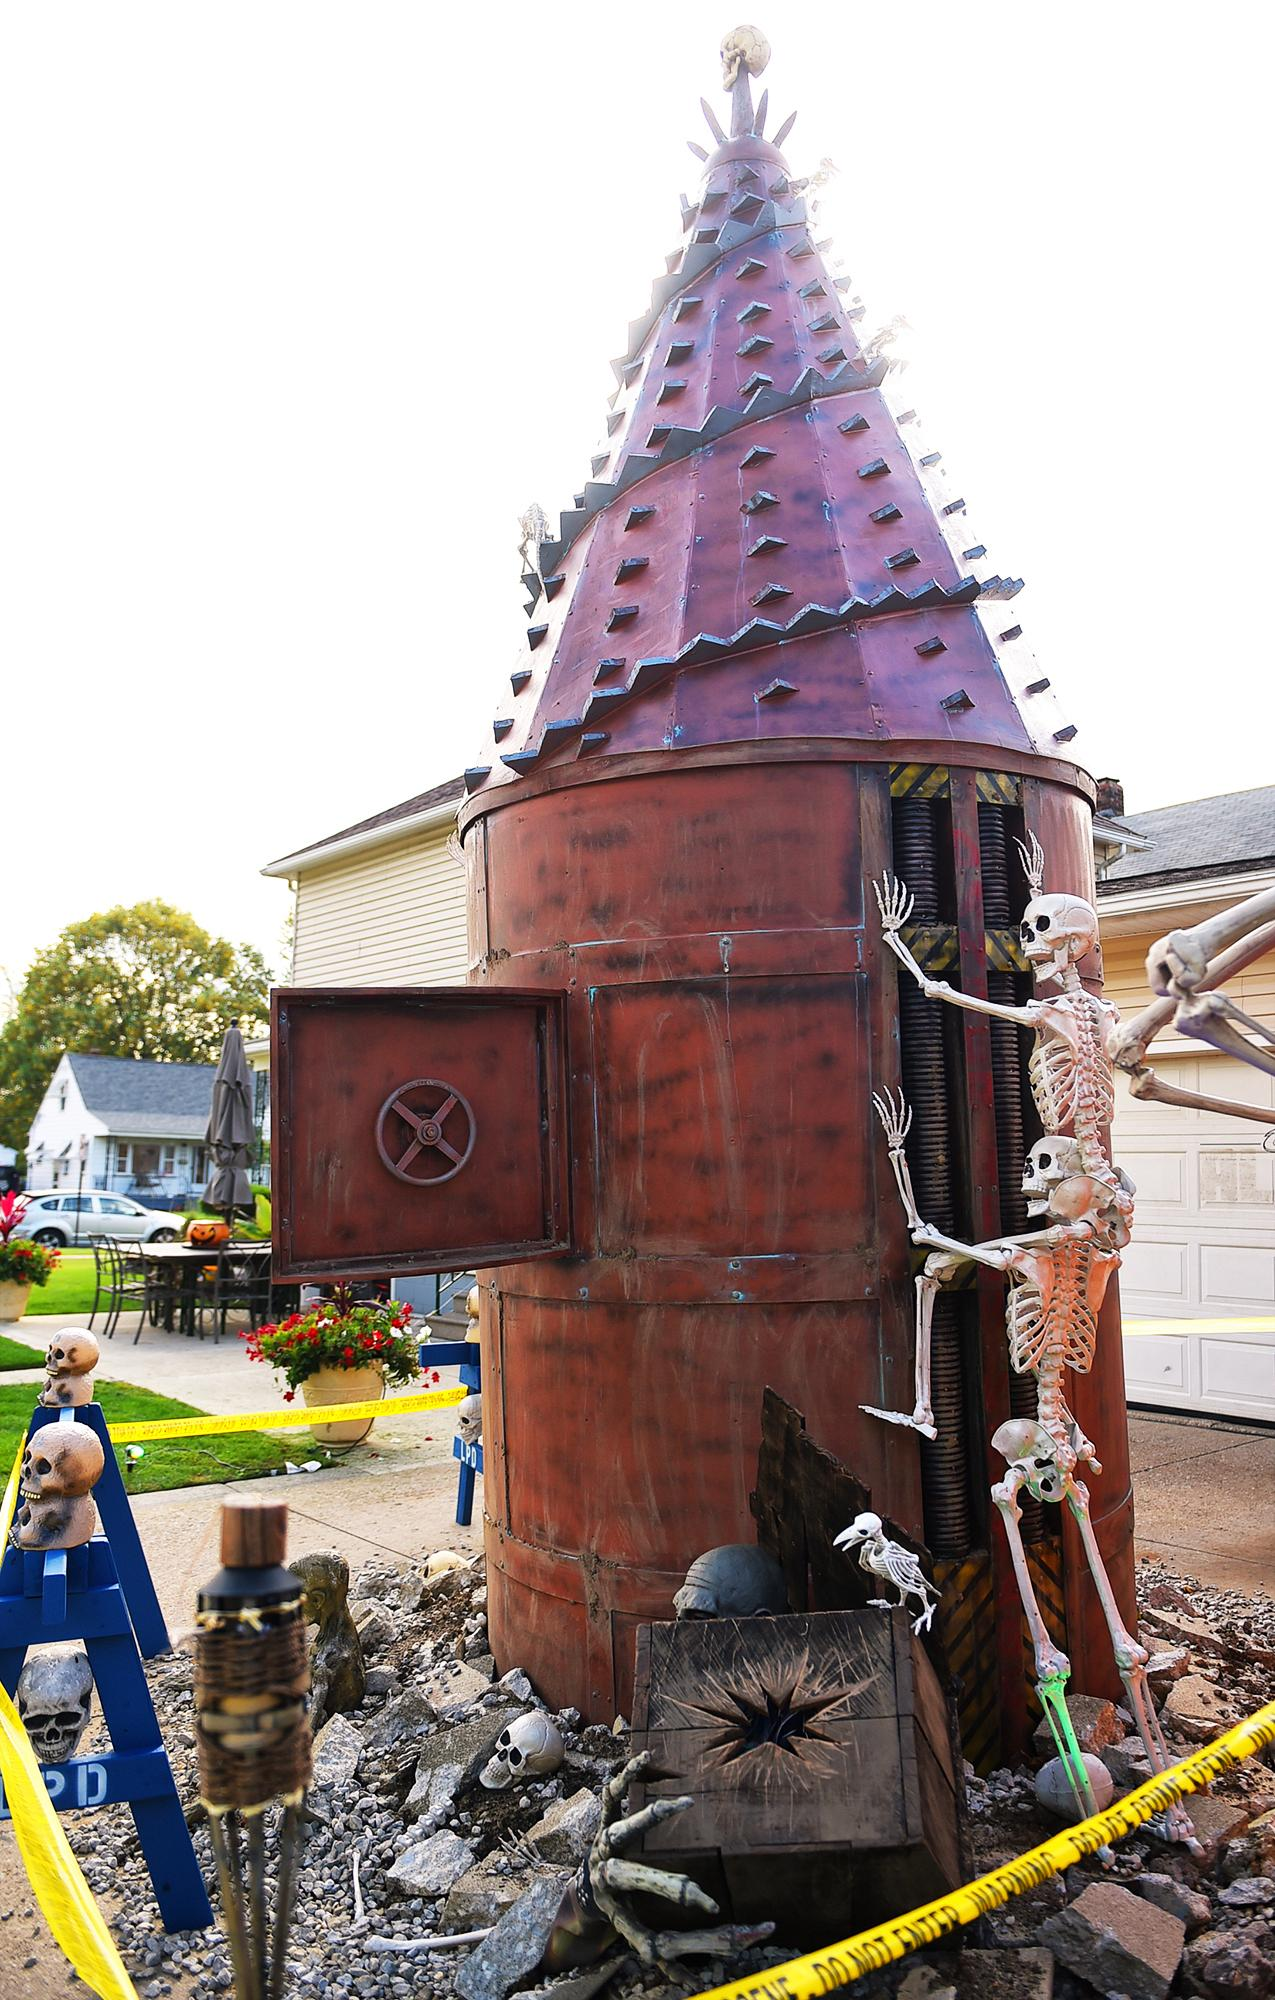 In an Oct. 12, 2017 photo, Ricky and Marlene Rodriguez's home at the corner of 30th St. and Tacoma Ave., in Lorain, Ohio, has morphed from a pirate ship, to a train and now into a digging machine poking through the home's driveway. The home is an annual attraction for neighbors and passersby within the city.  (Kristin Bauer/Chronicle-Telegram via AP)